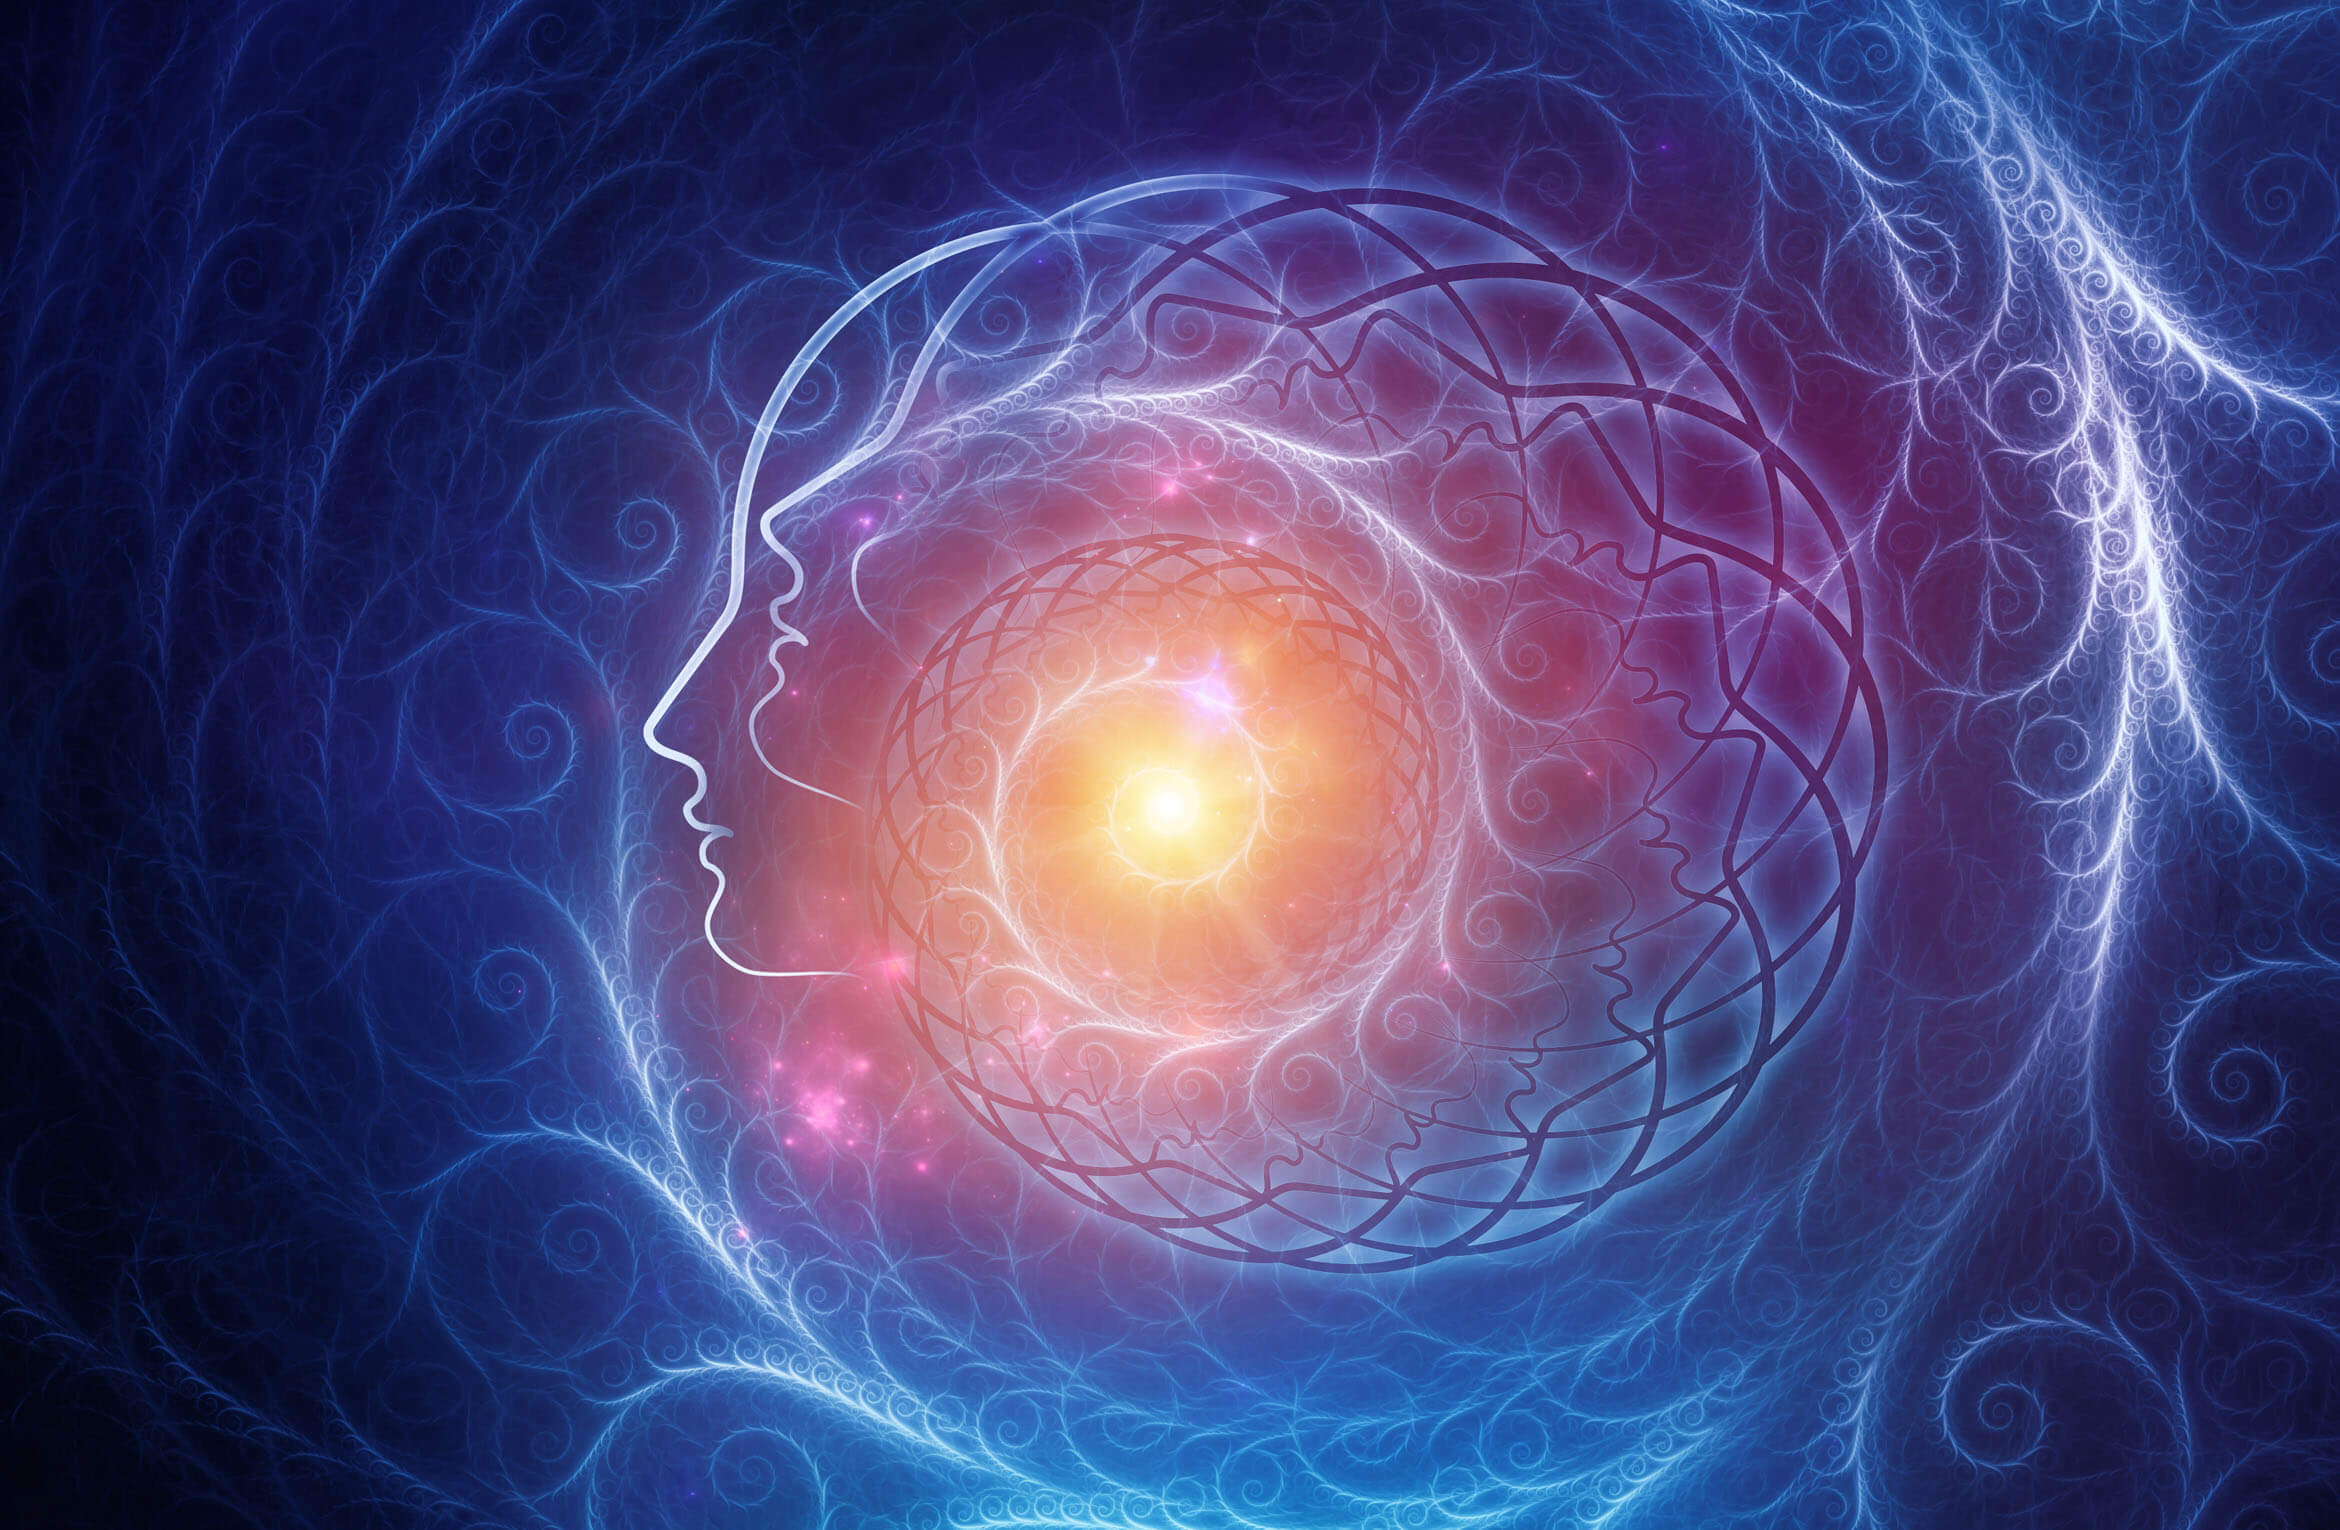 Neuroscientists believe deep neural networks could help illustrate how psychedelics alter consciousness